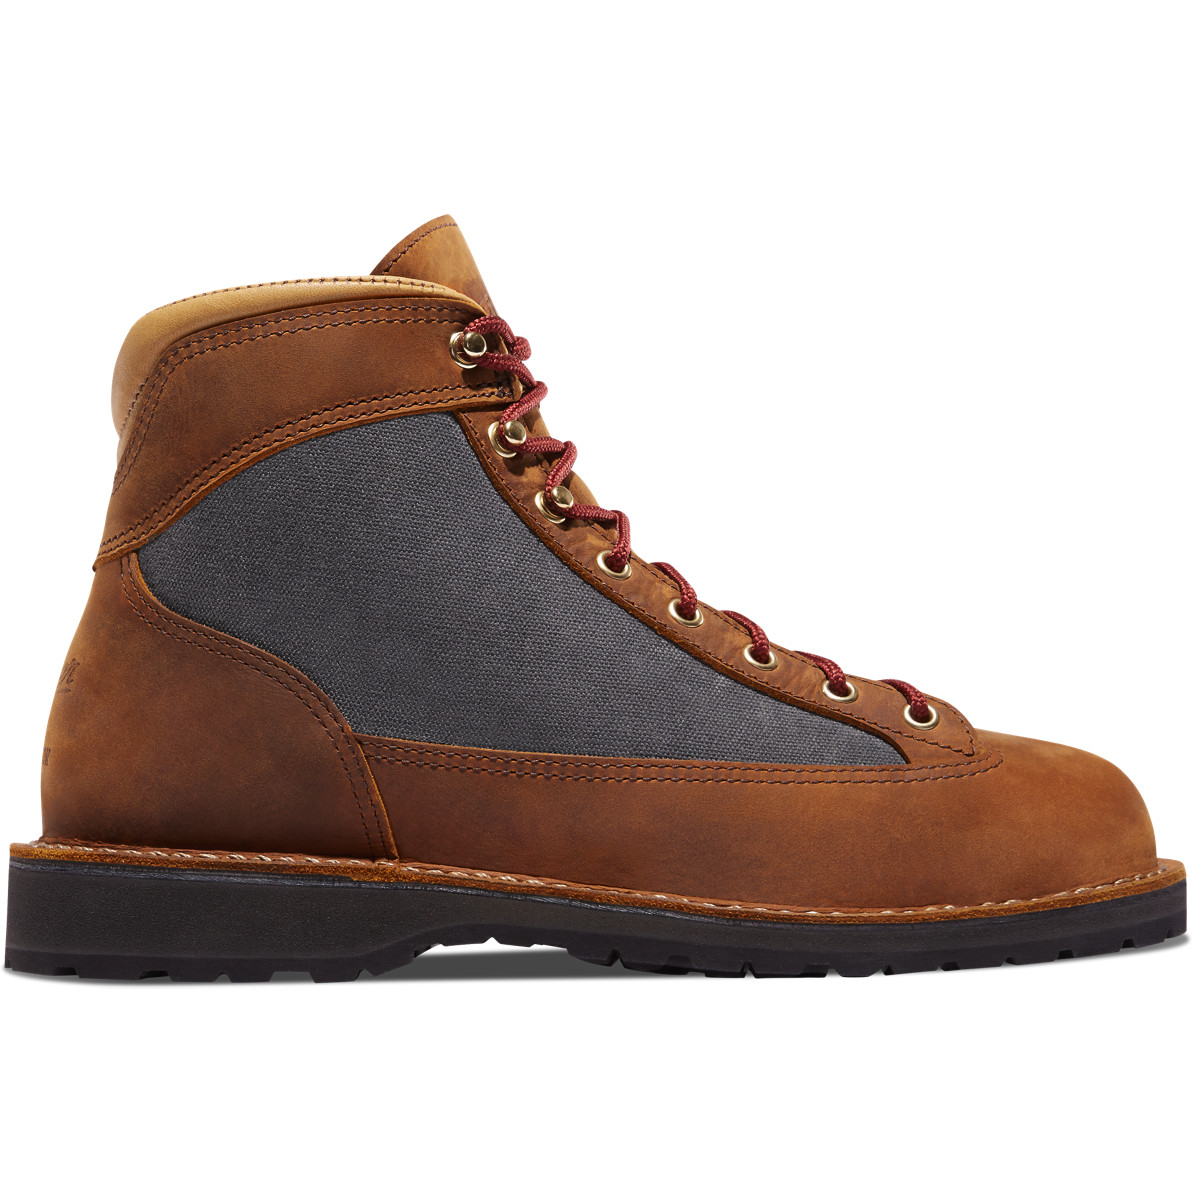 Danner Ridge Tan/Gray